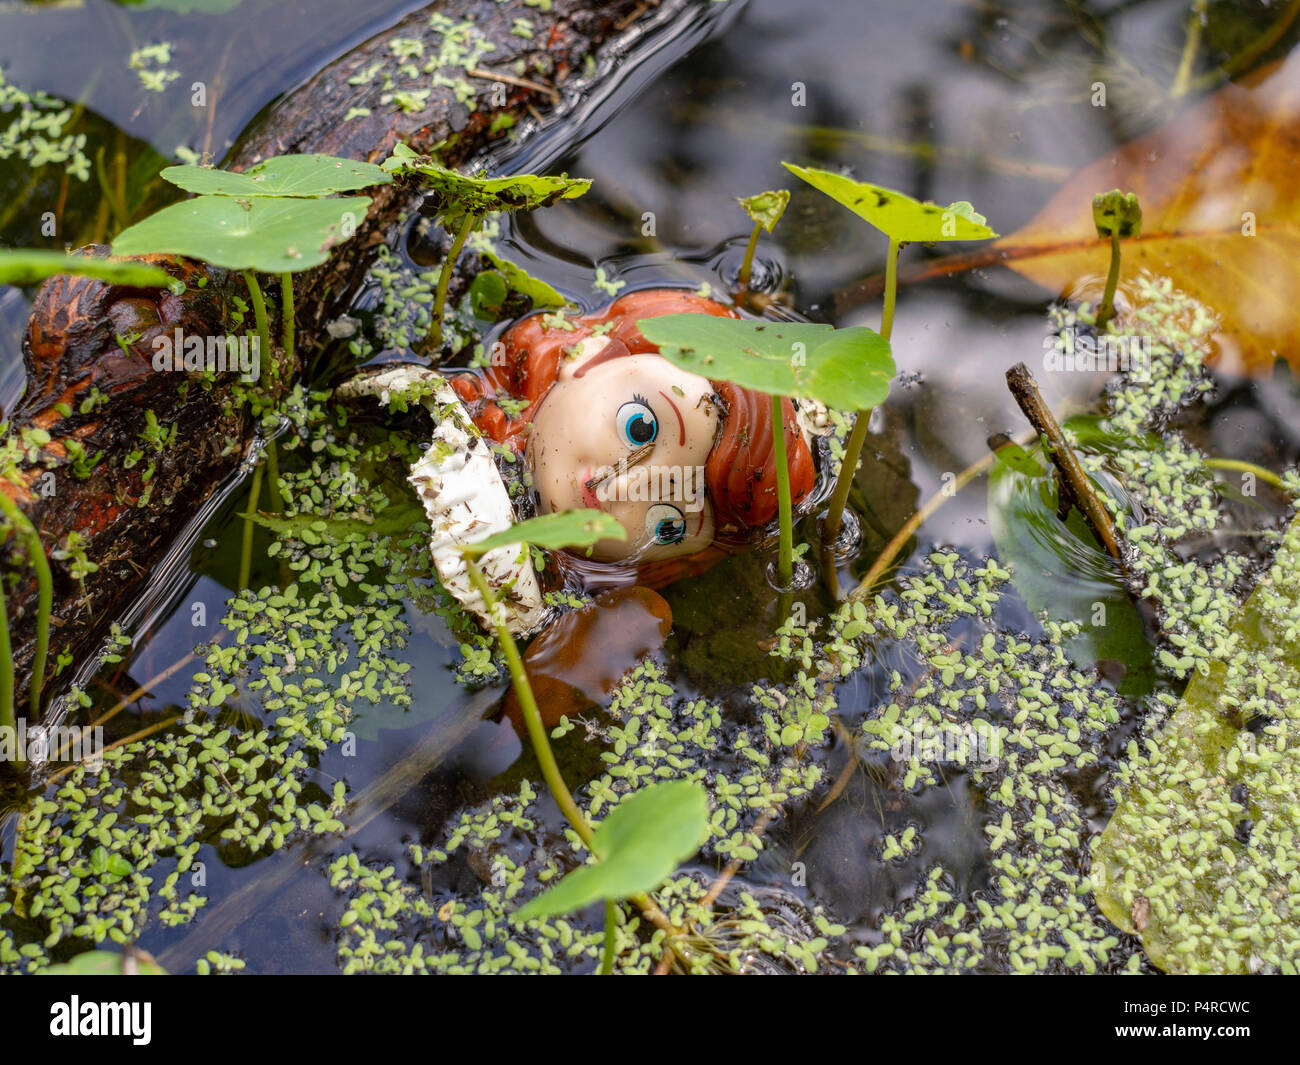 A plastic doll's head floats in a pond in algae and other aquatic vegetation in New Orleans, Louisiana. - Stock Image